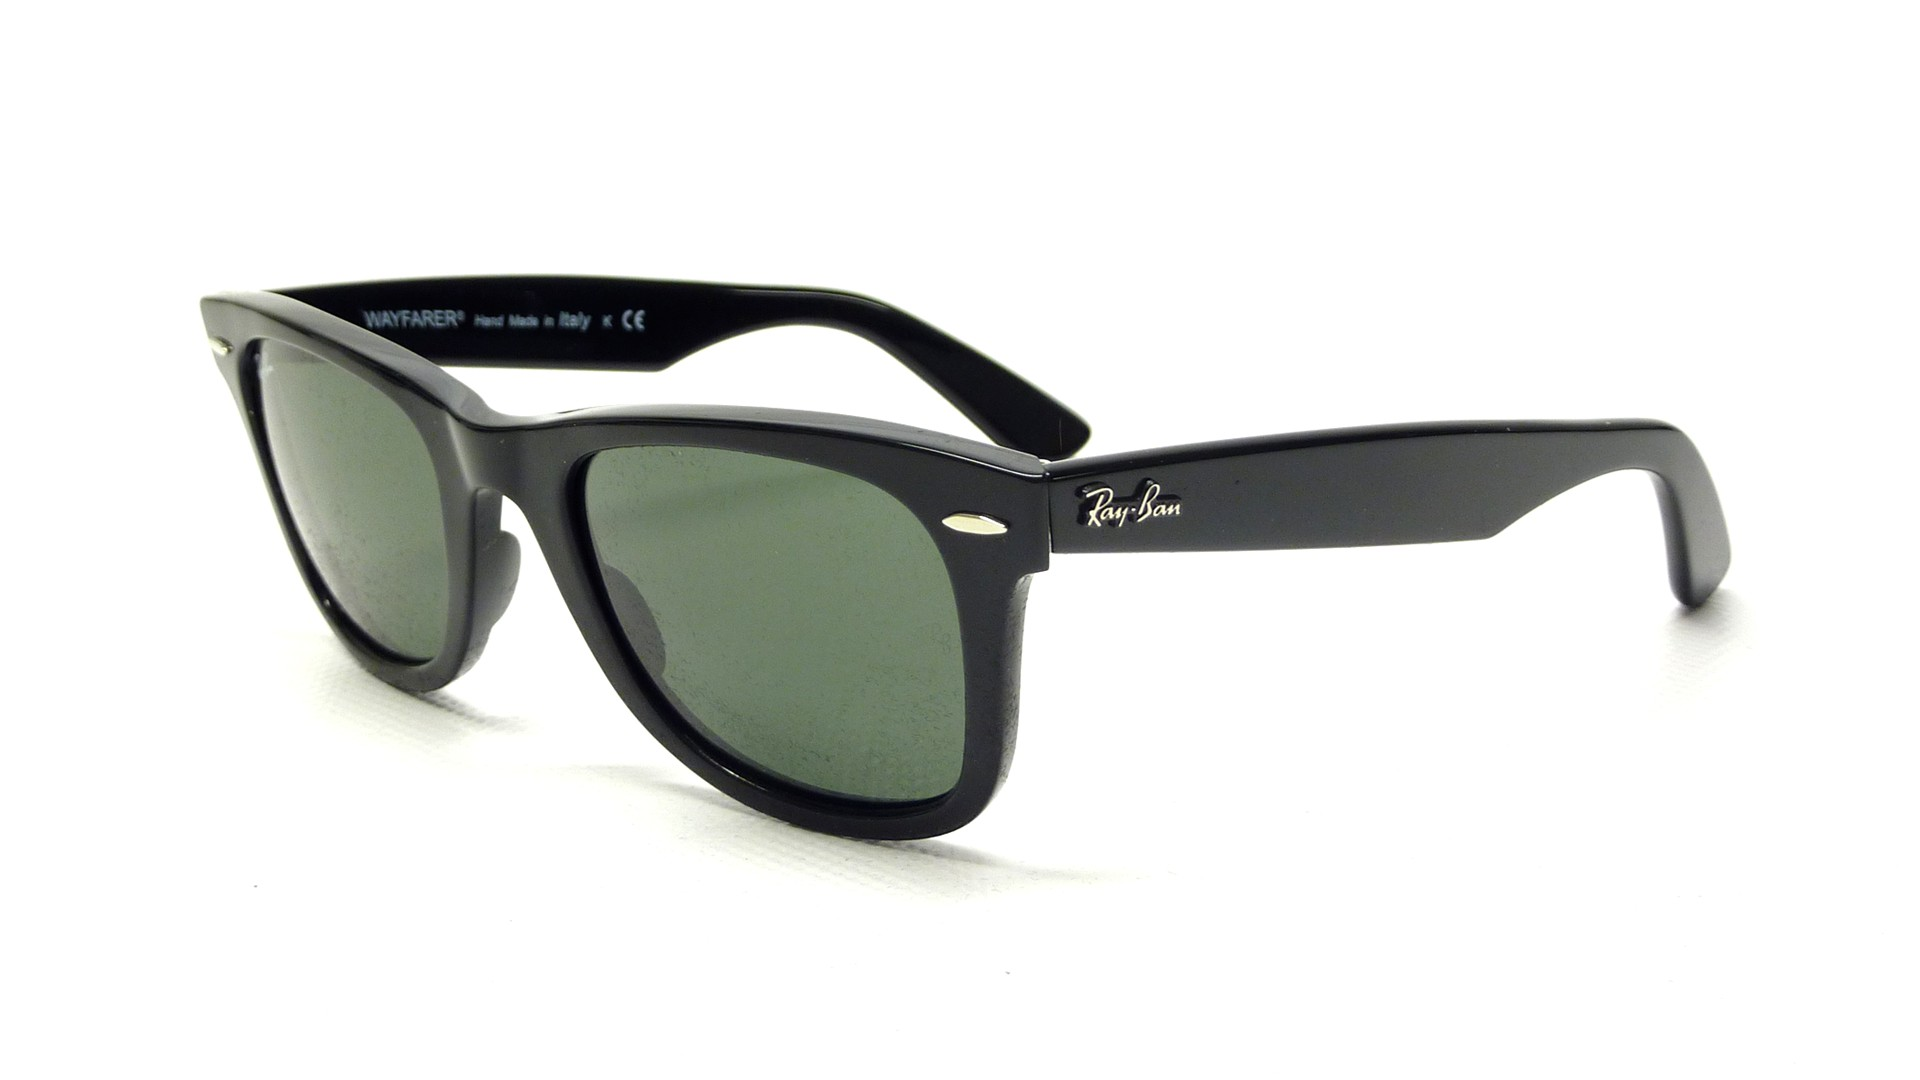 03ea1fdd0ed1d2 Sunglasses Ray-Ban Original Wayfarer Black RB2140 901 50-22 Medium